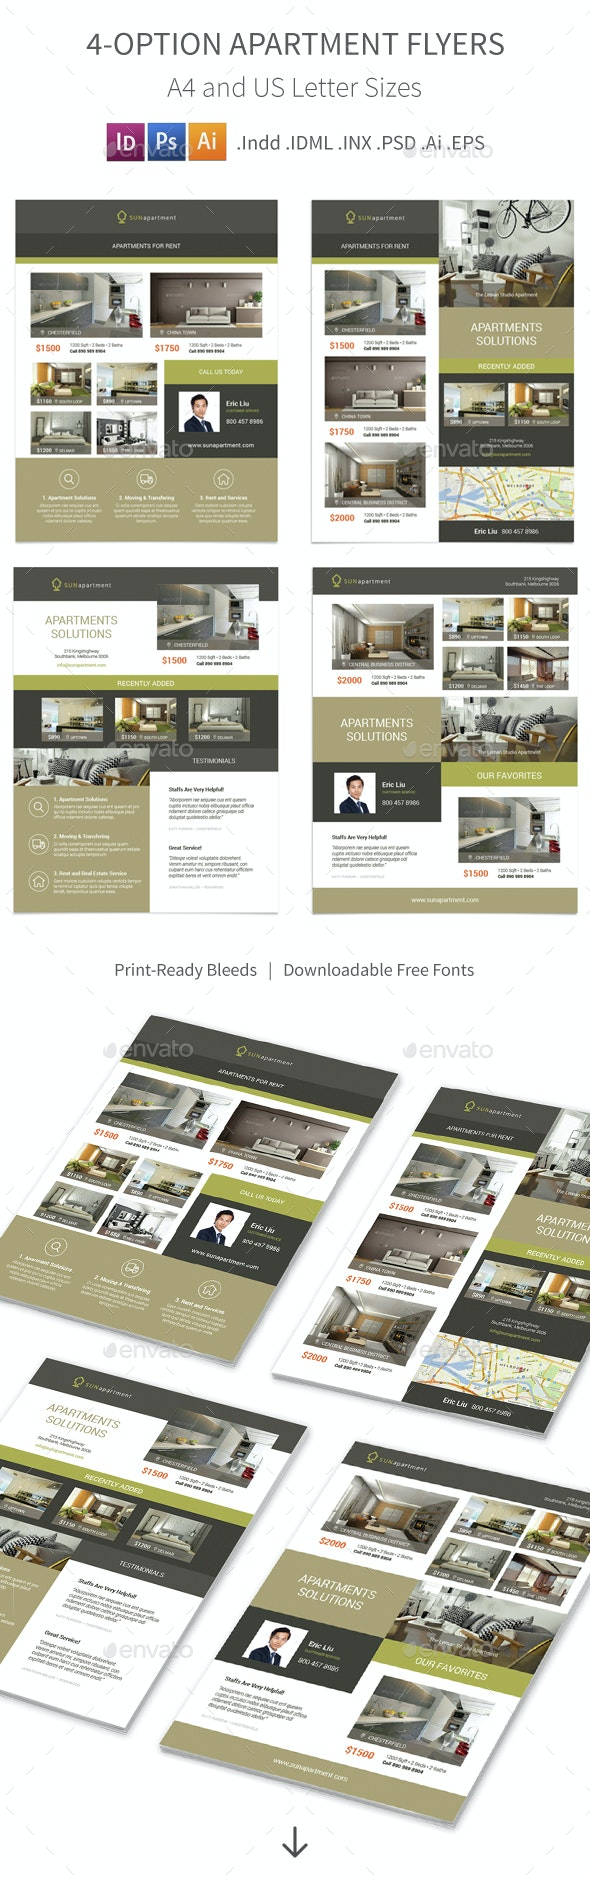 Apartment For Rent Flyers 2 – 4 Options - Corporate Flyers